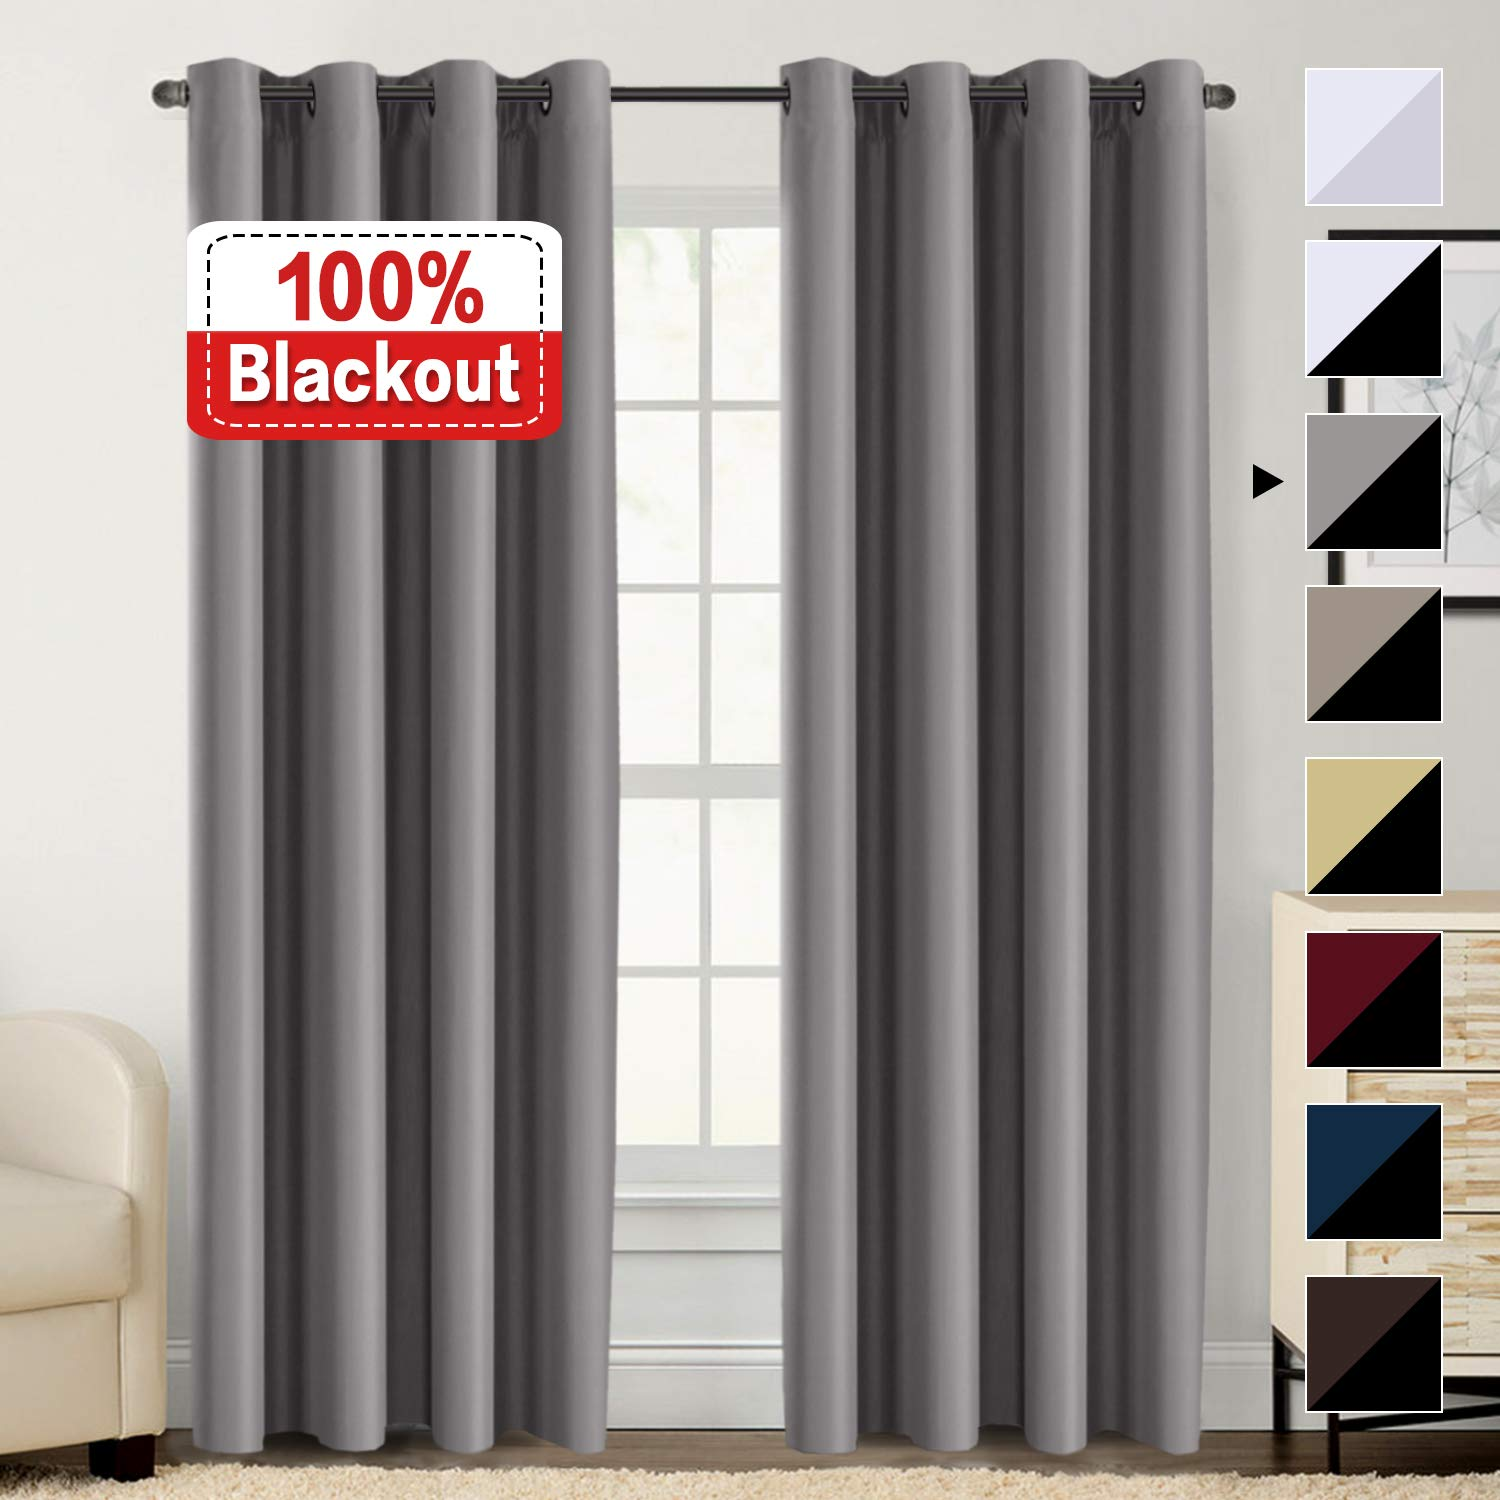 Top 8 Best Curtains For Noise Reduction - Buyer's Guide 8